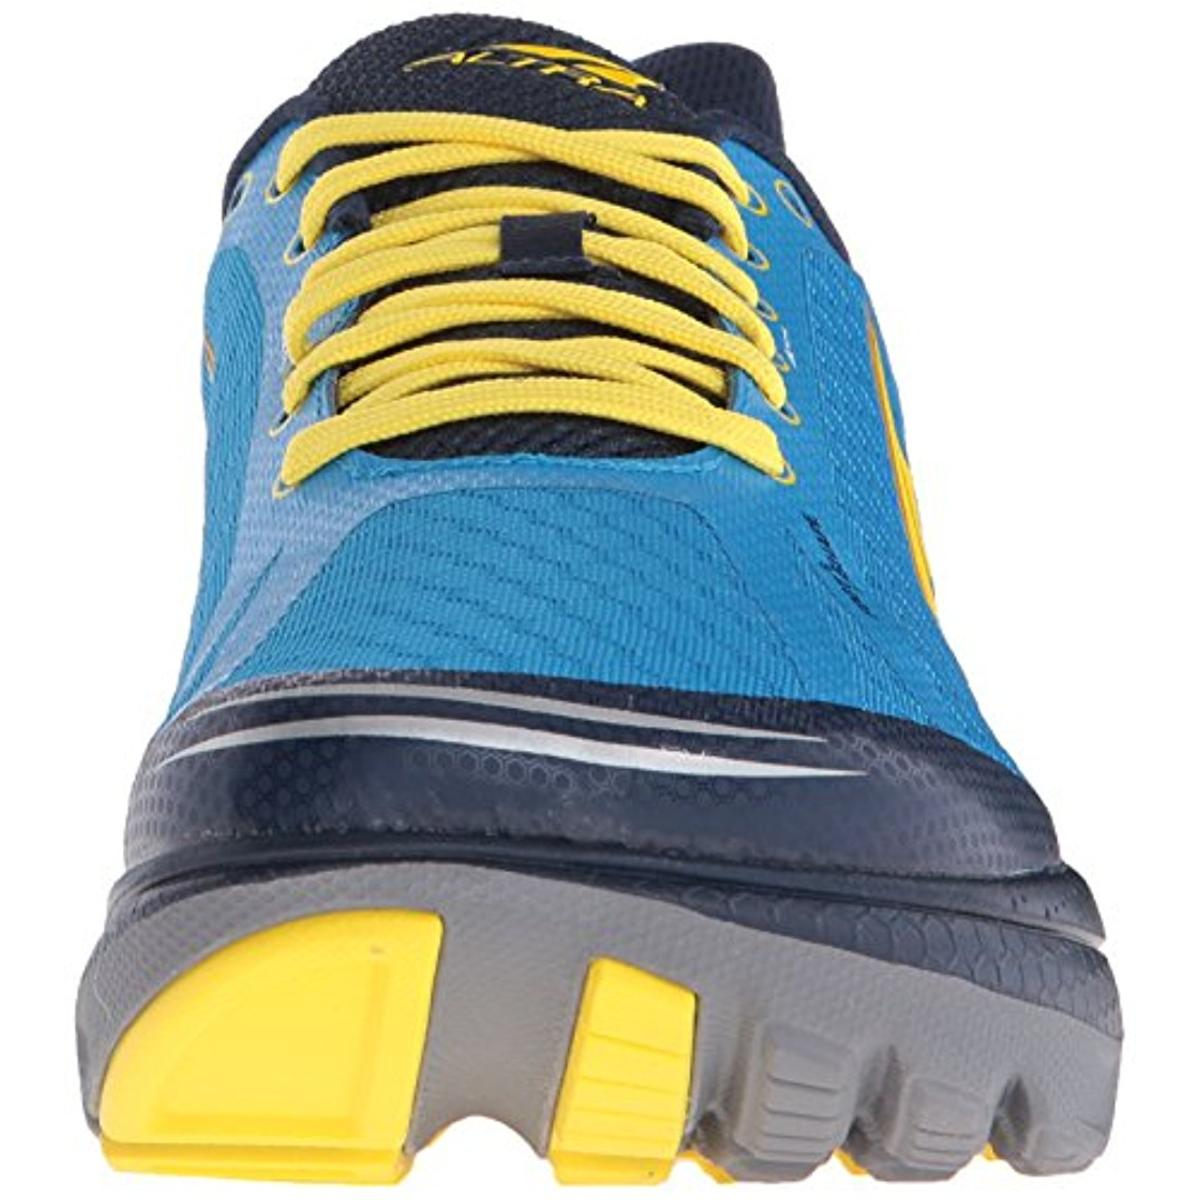 Altra Men's Lone Peak 3 Running Shoe Affordable and personalized shoes